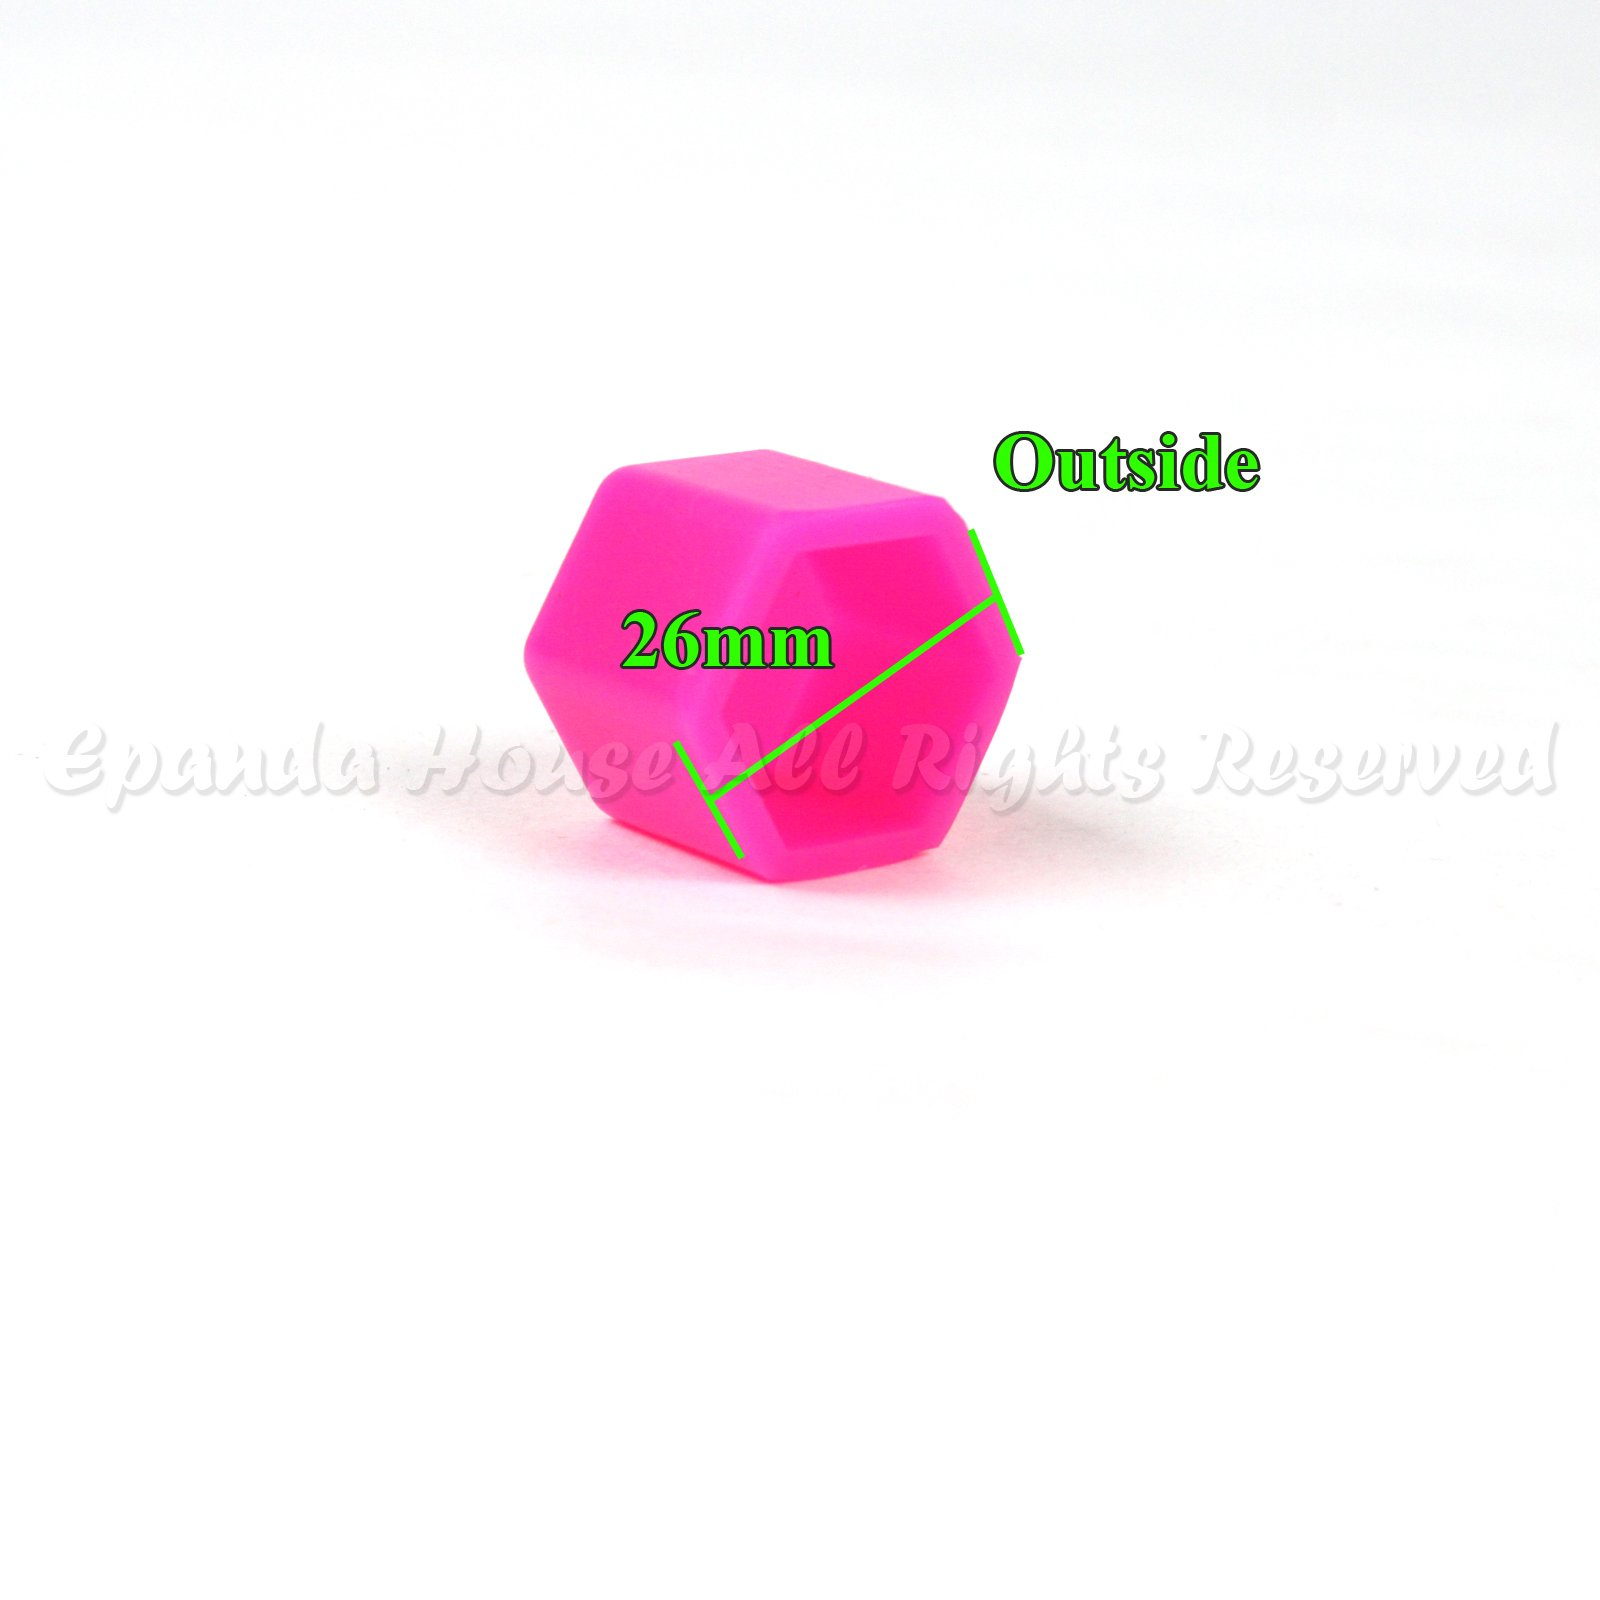 21mm 20X Glow In The Dark Blacklight Wheel Rim Lug Nuts Covers Cars/Bikes Pink by EpandaHouse (Image #3)